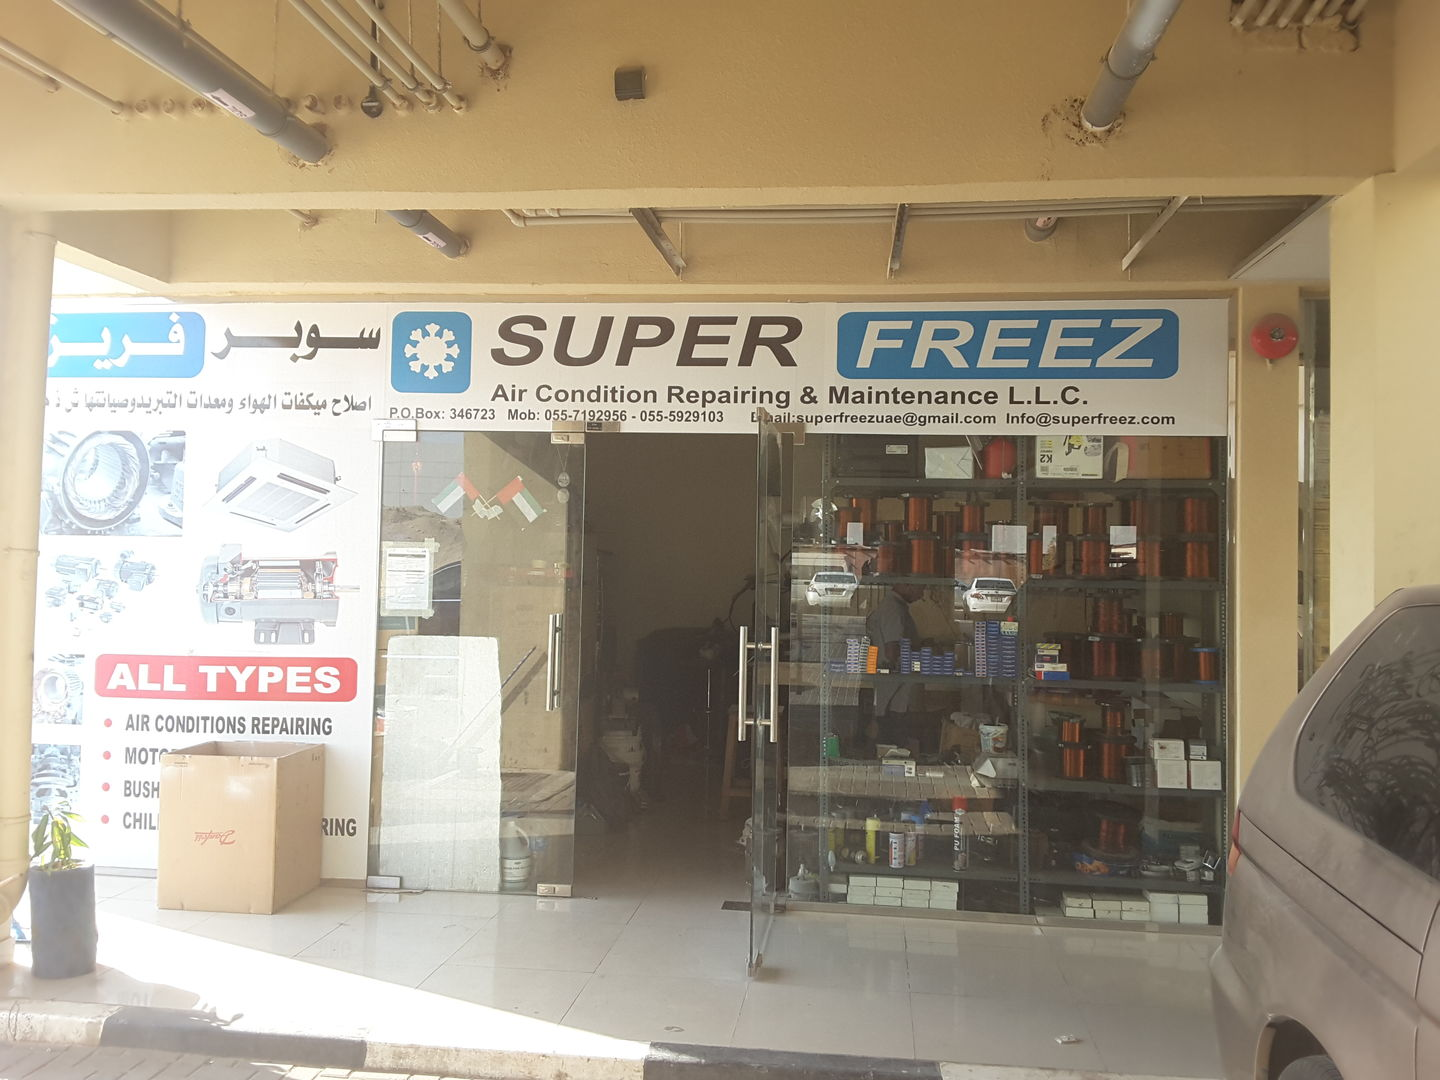 HiDubai-business-super-freez-air-condition-repairing-and-maintenance-home-handyman-maintenance-services-ras-al-khor-dubai-2